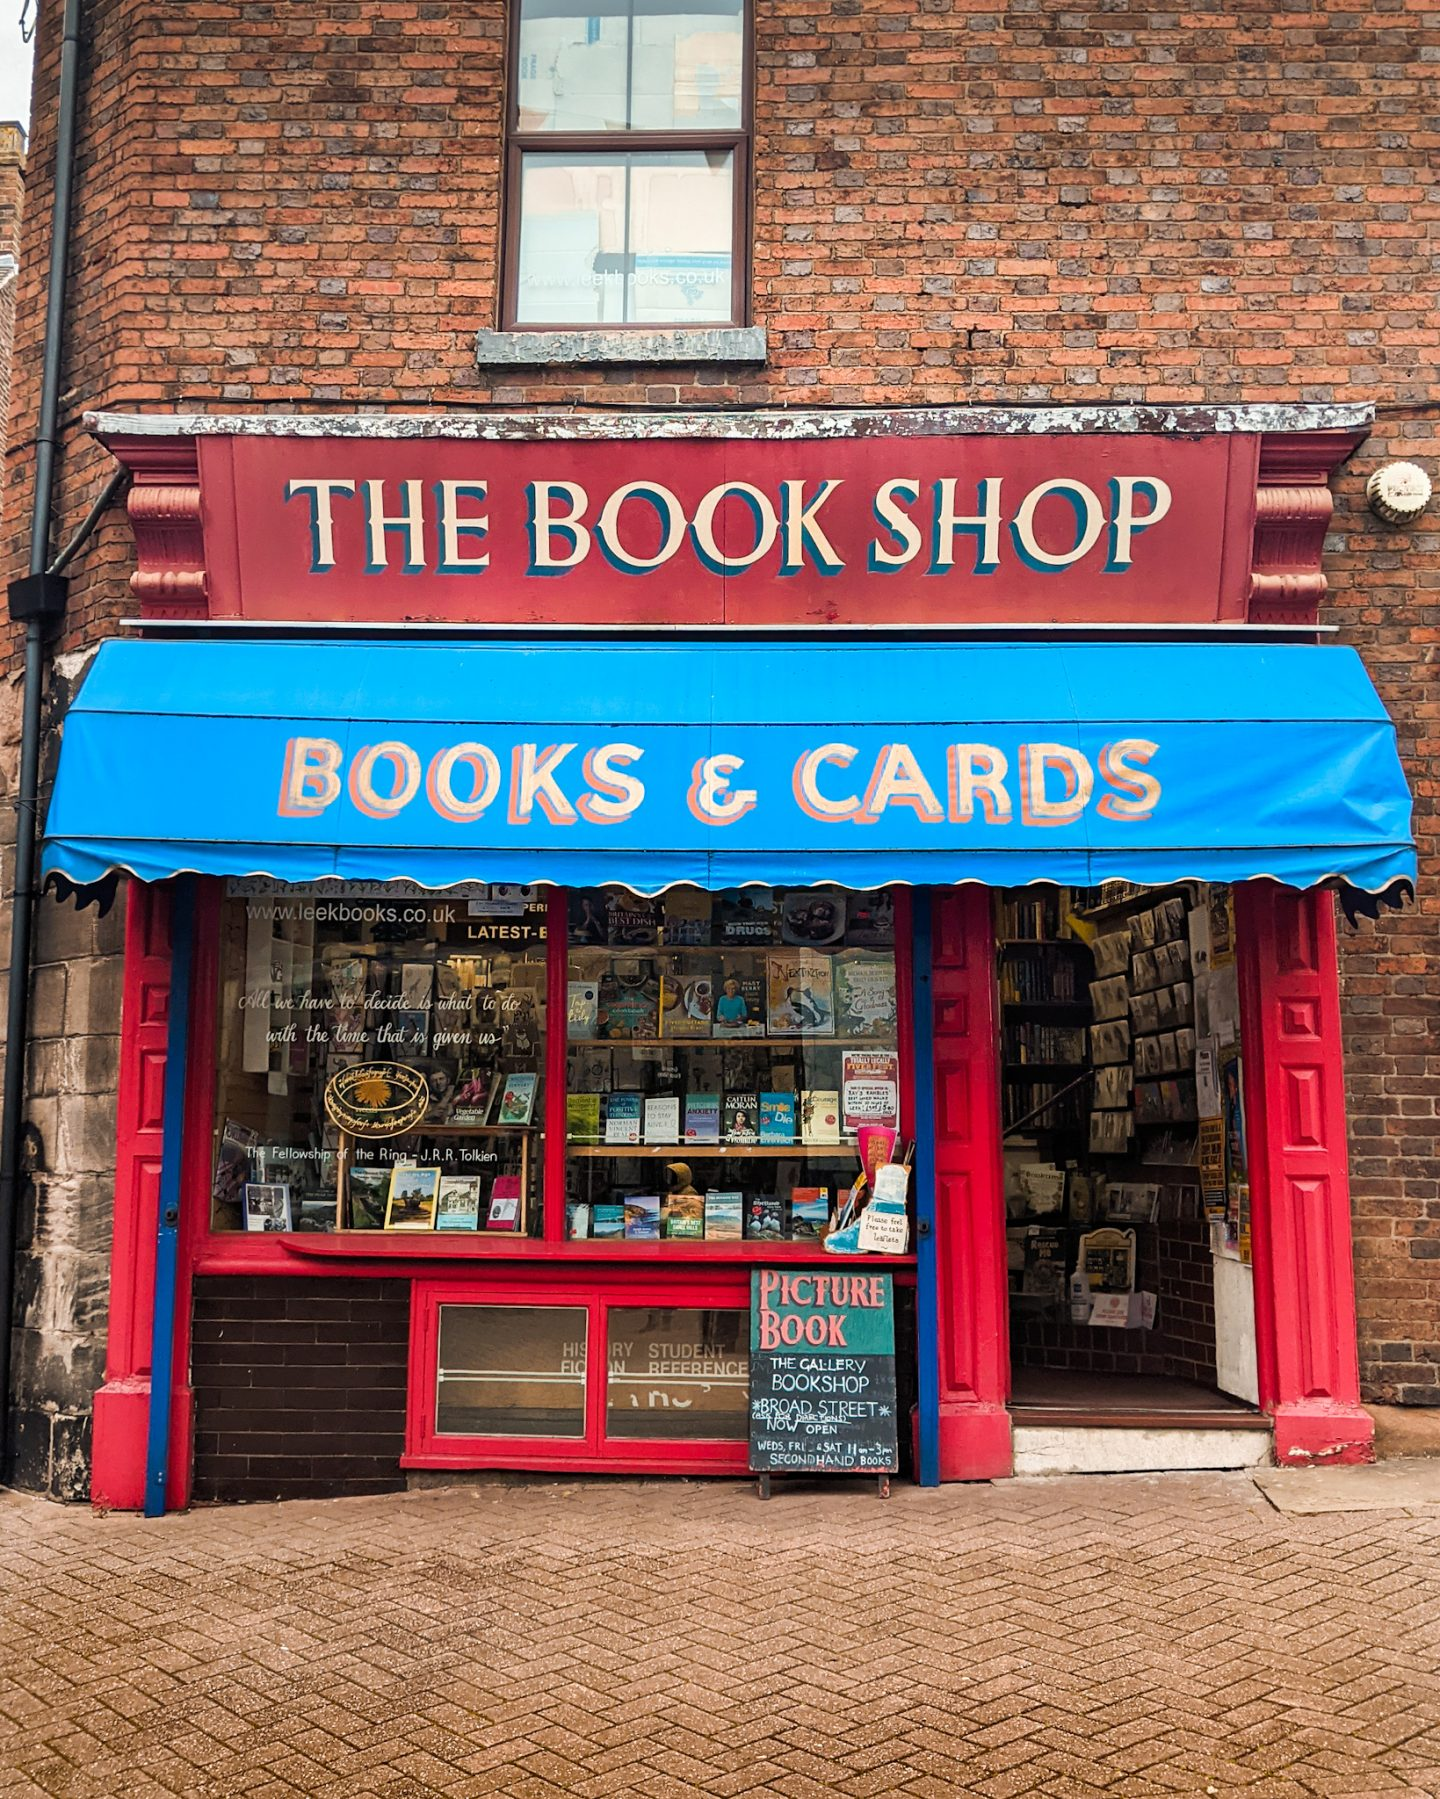 The exterior of Picture Book Bookshop with a red window frame and door and a blue awning